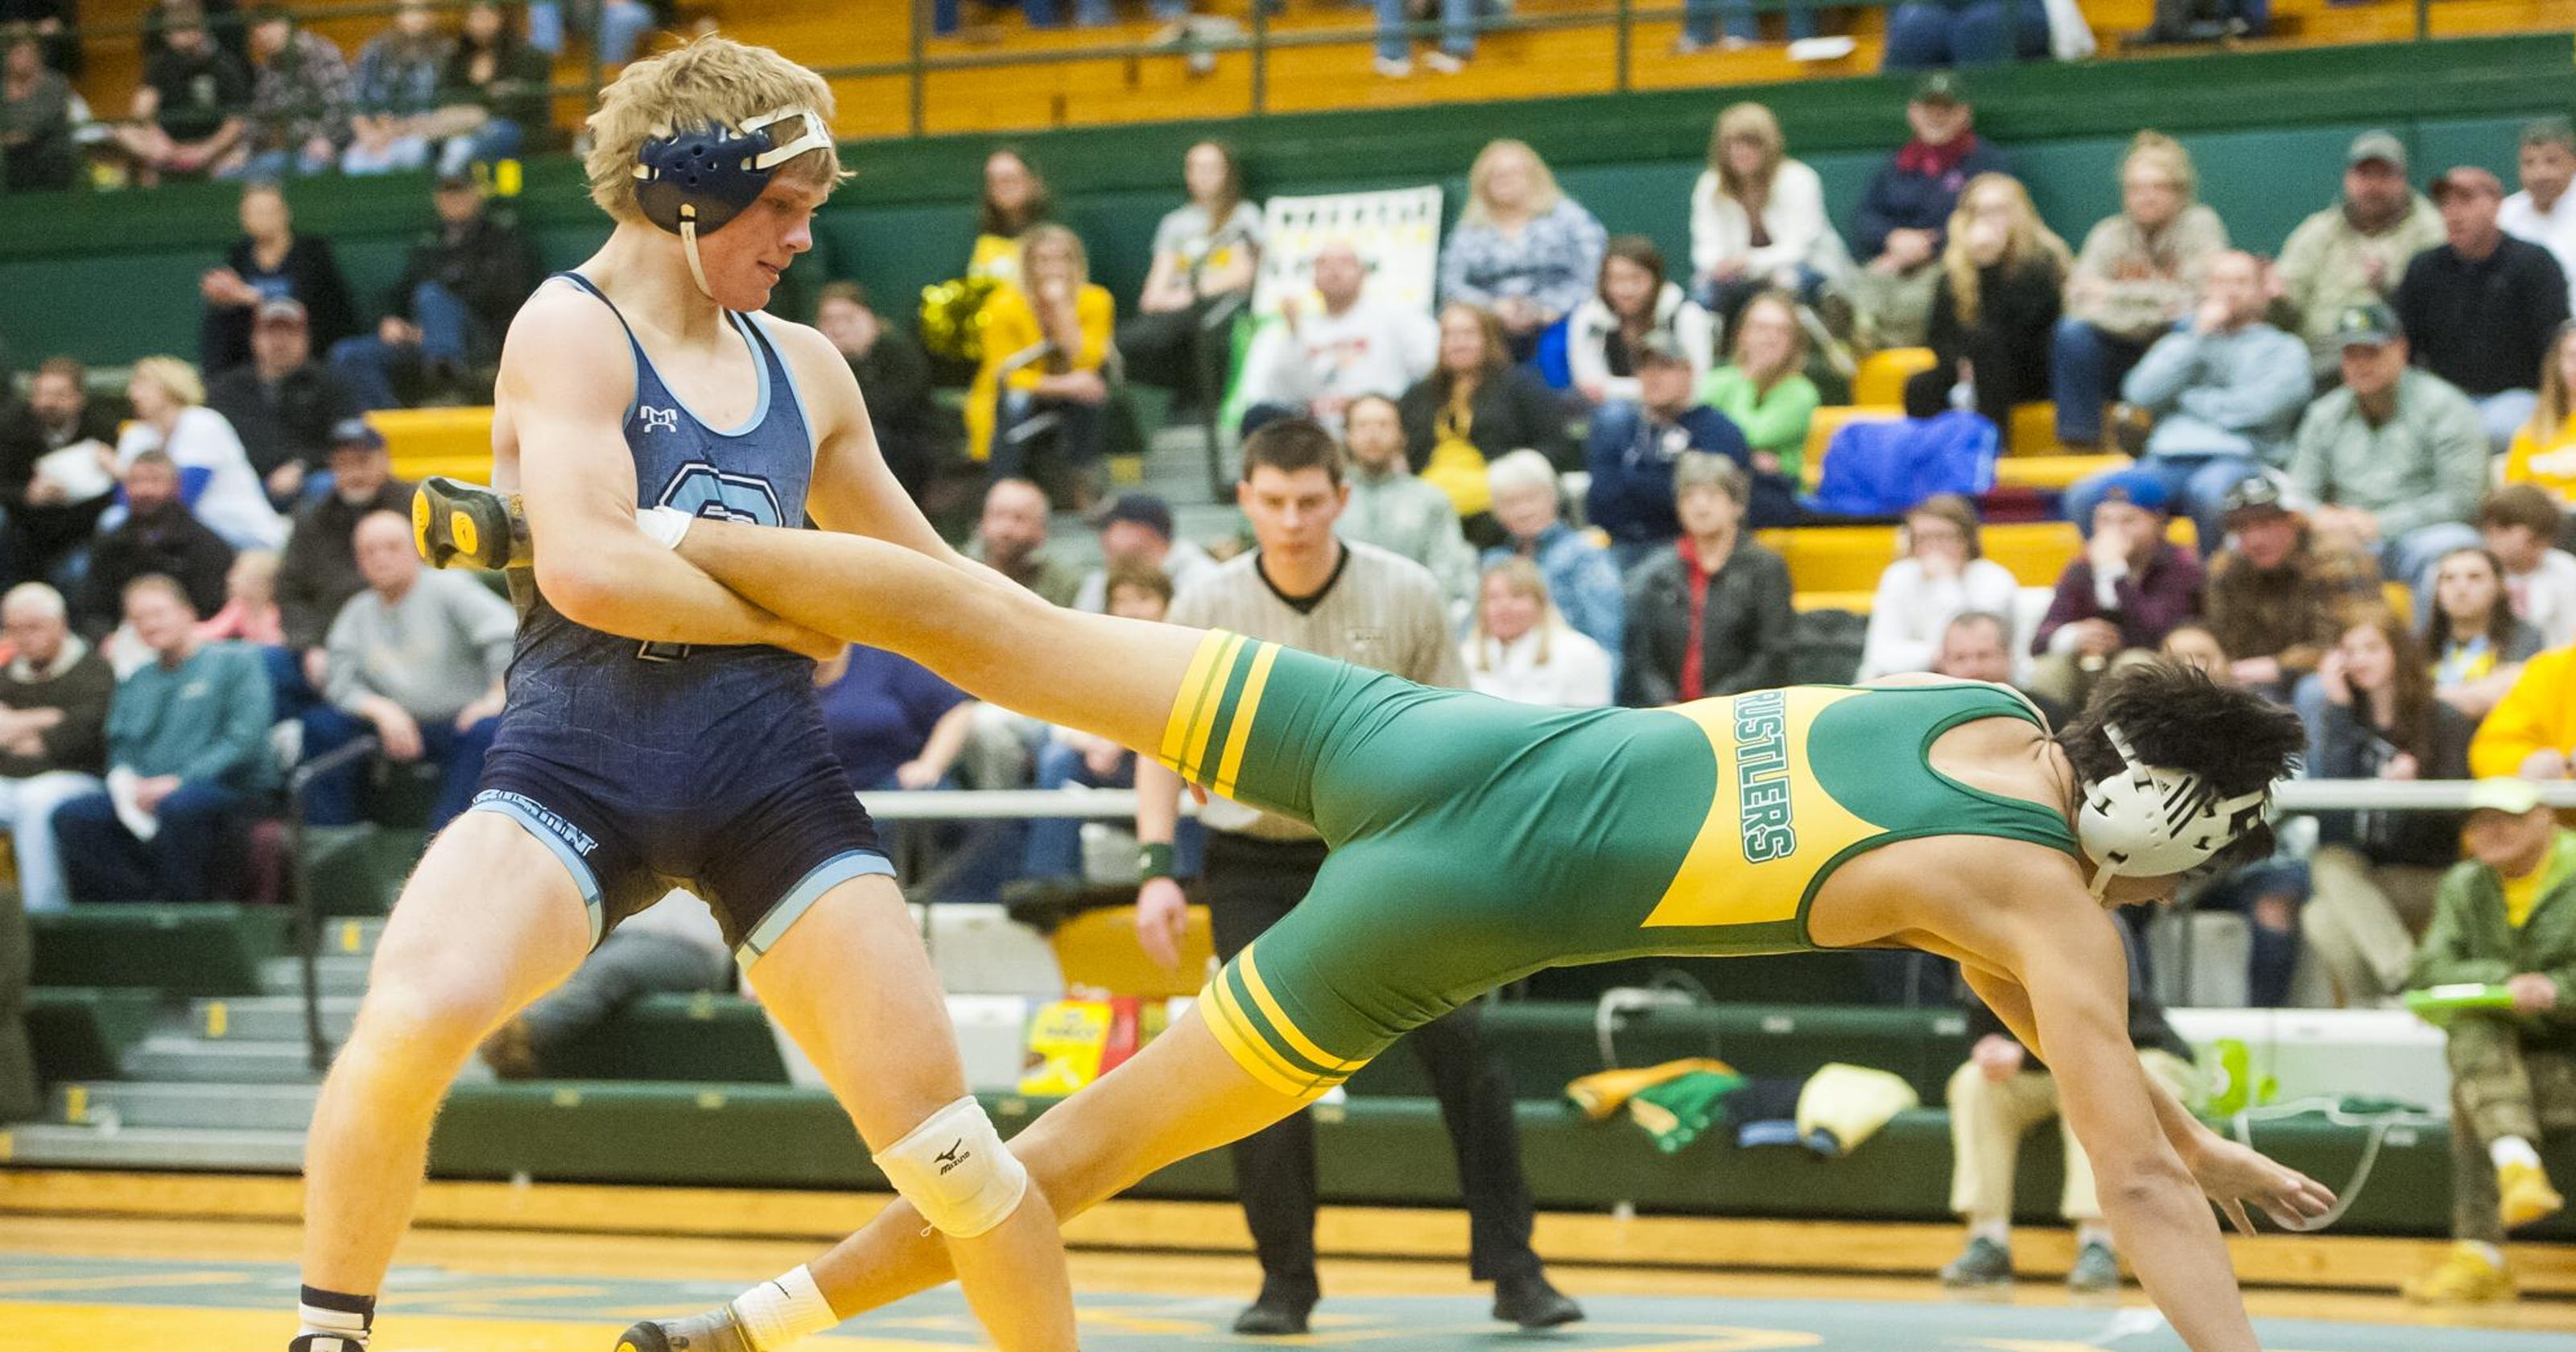 Divisional grappling tourneys slated around the state